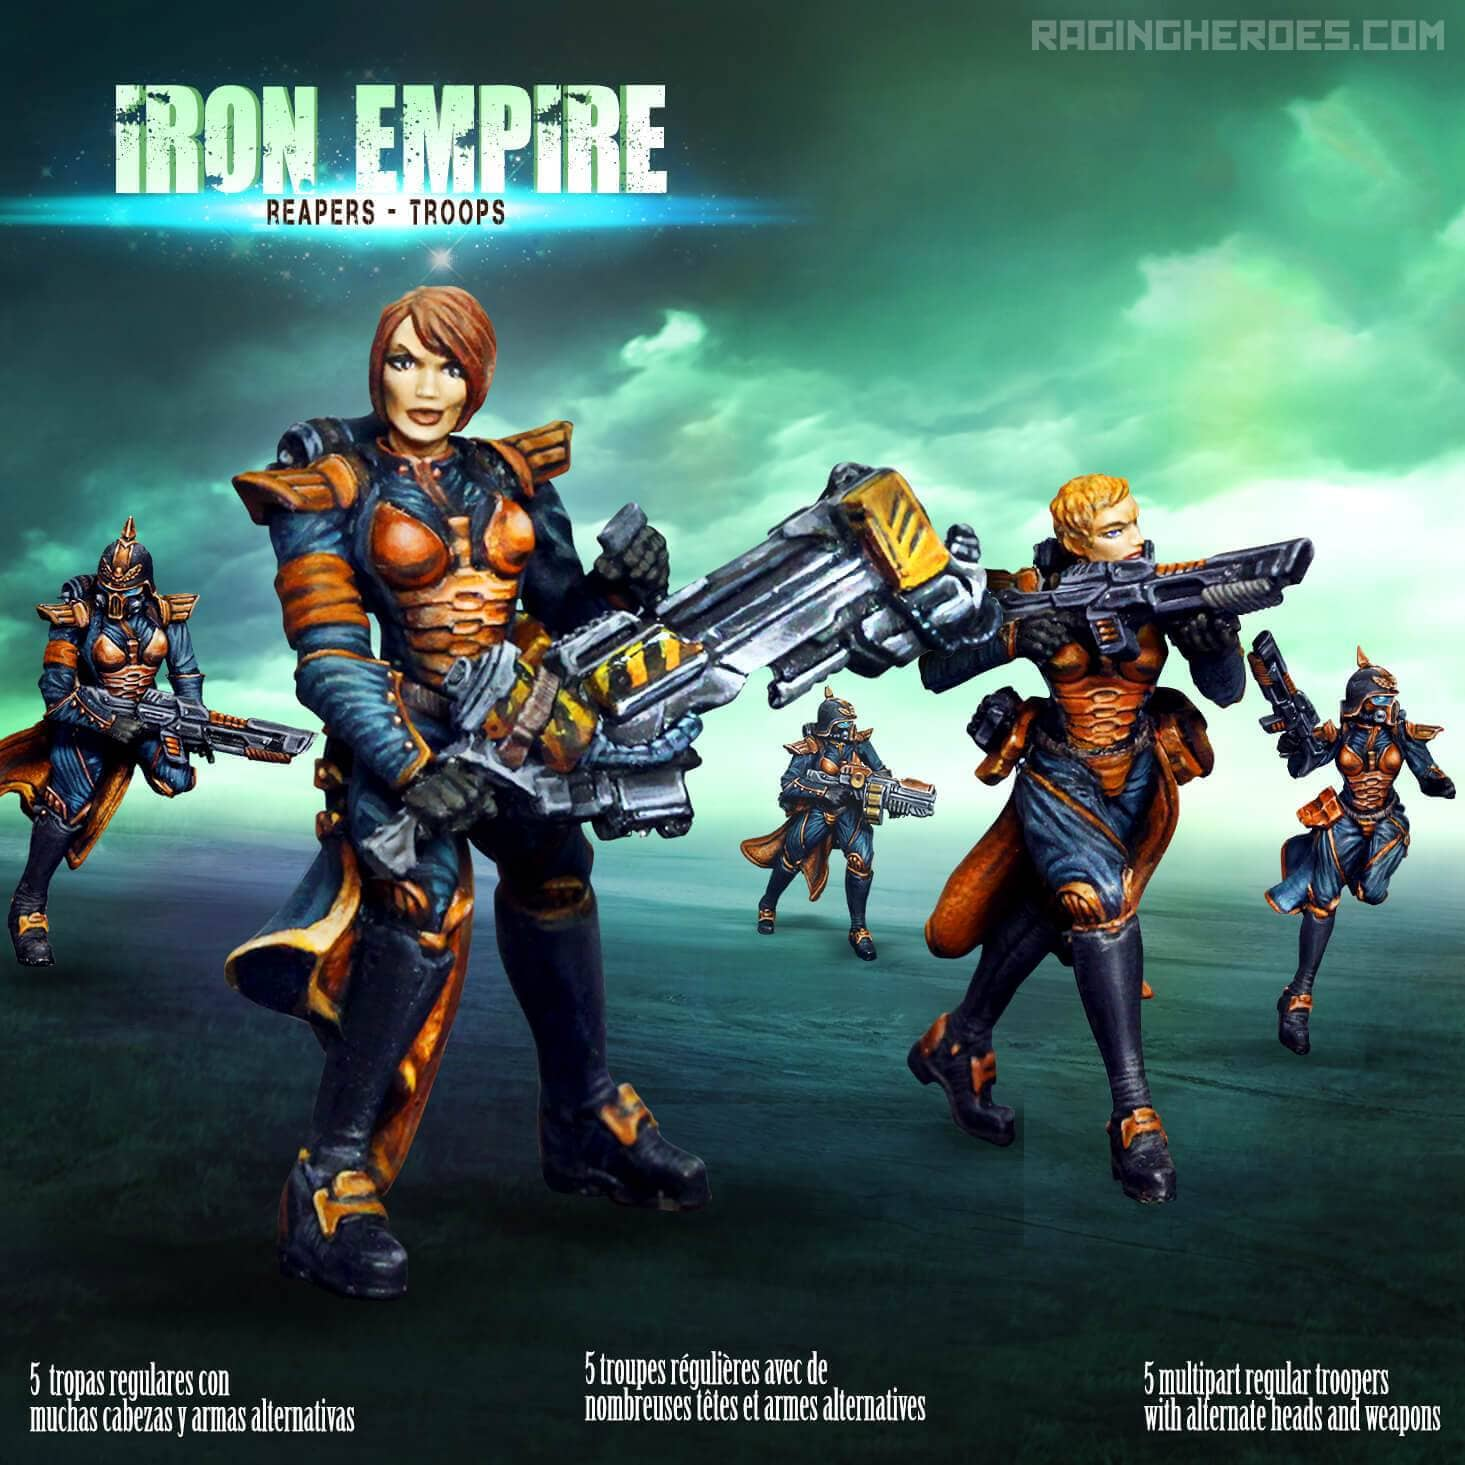 Iron Empire - Reapers - Troops - Raging Heroes